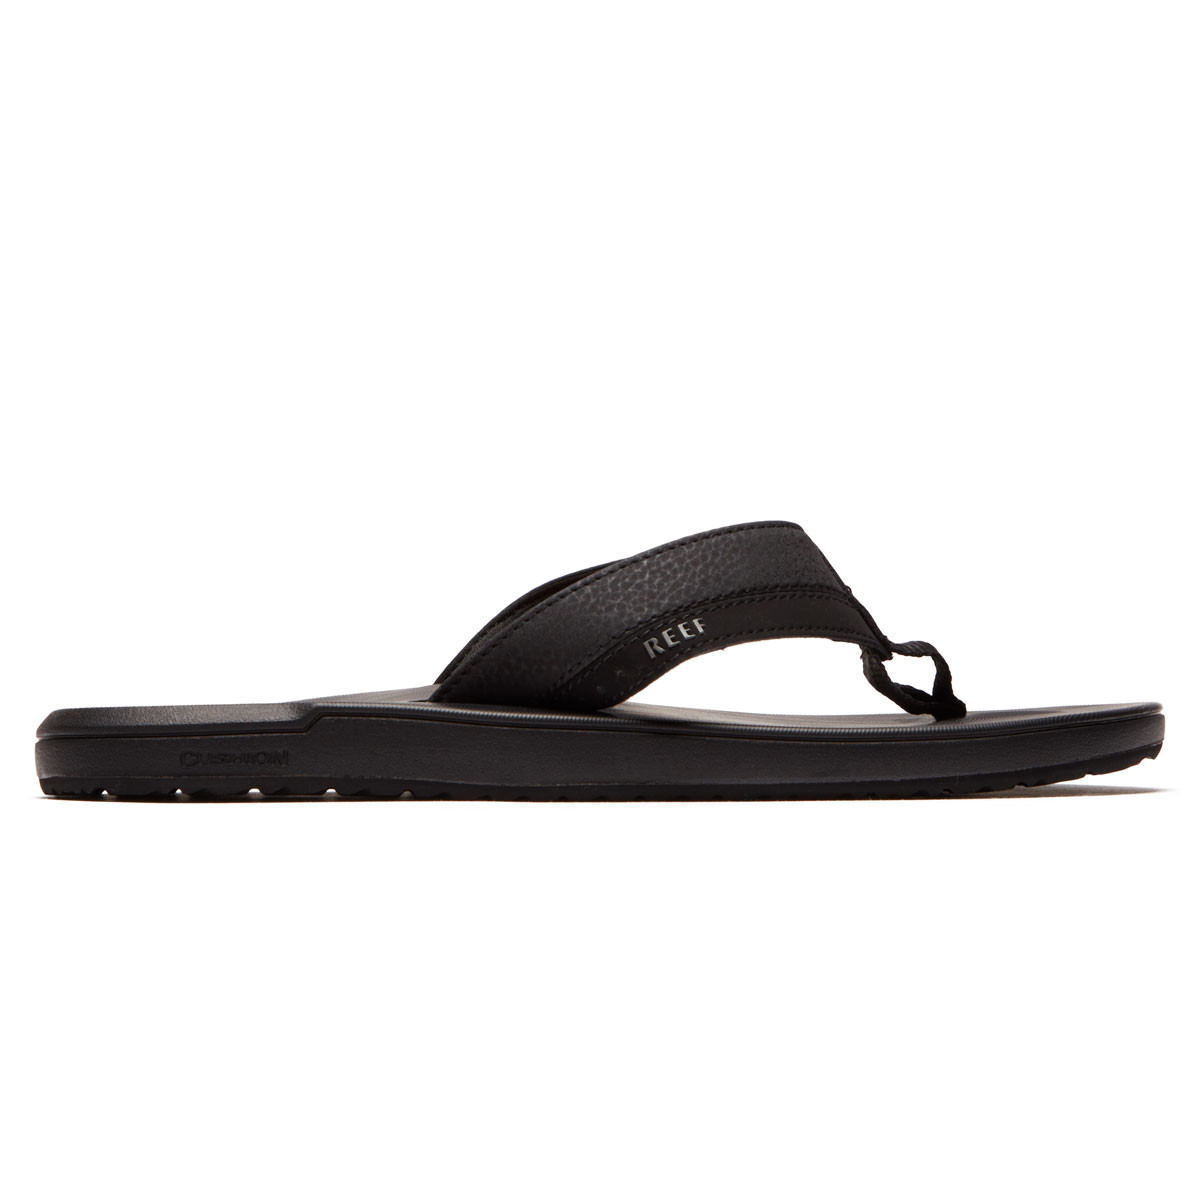 234bd07bf820 Reef Contoured Cushion Sandals - Black - 10.0